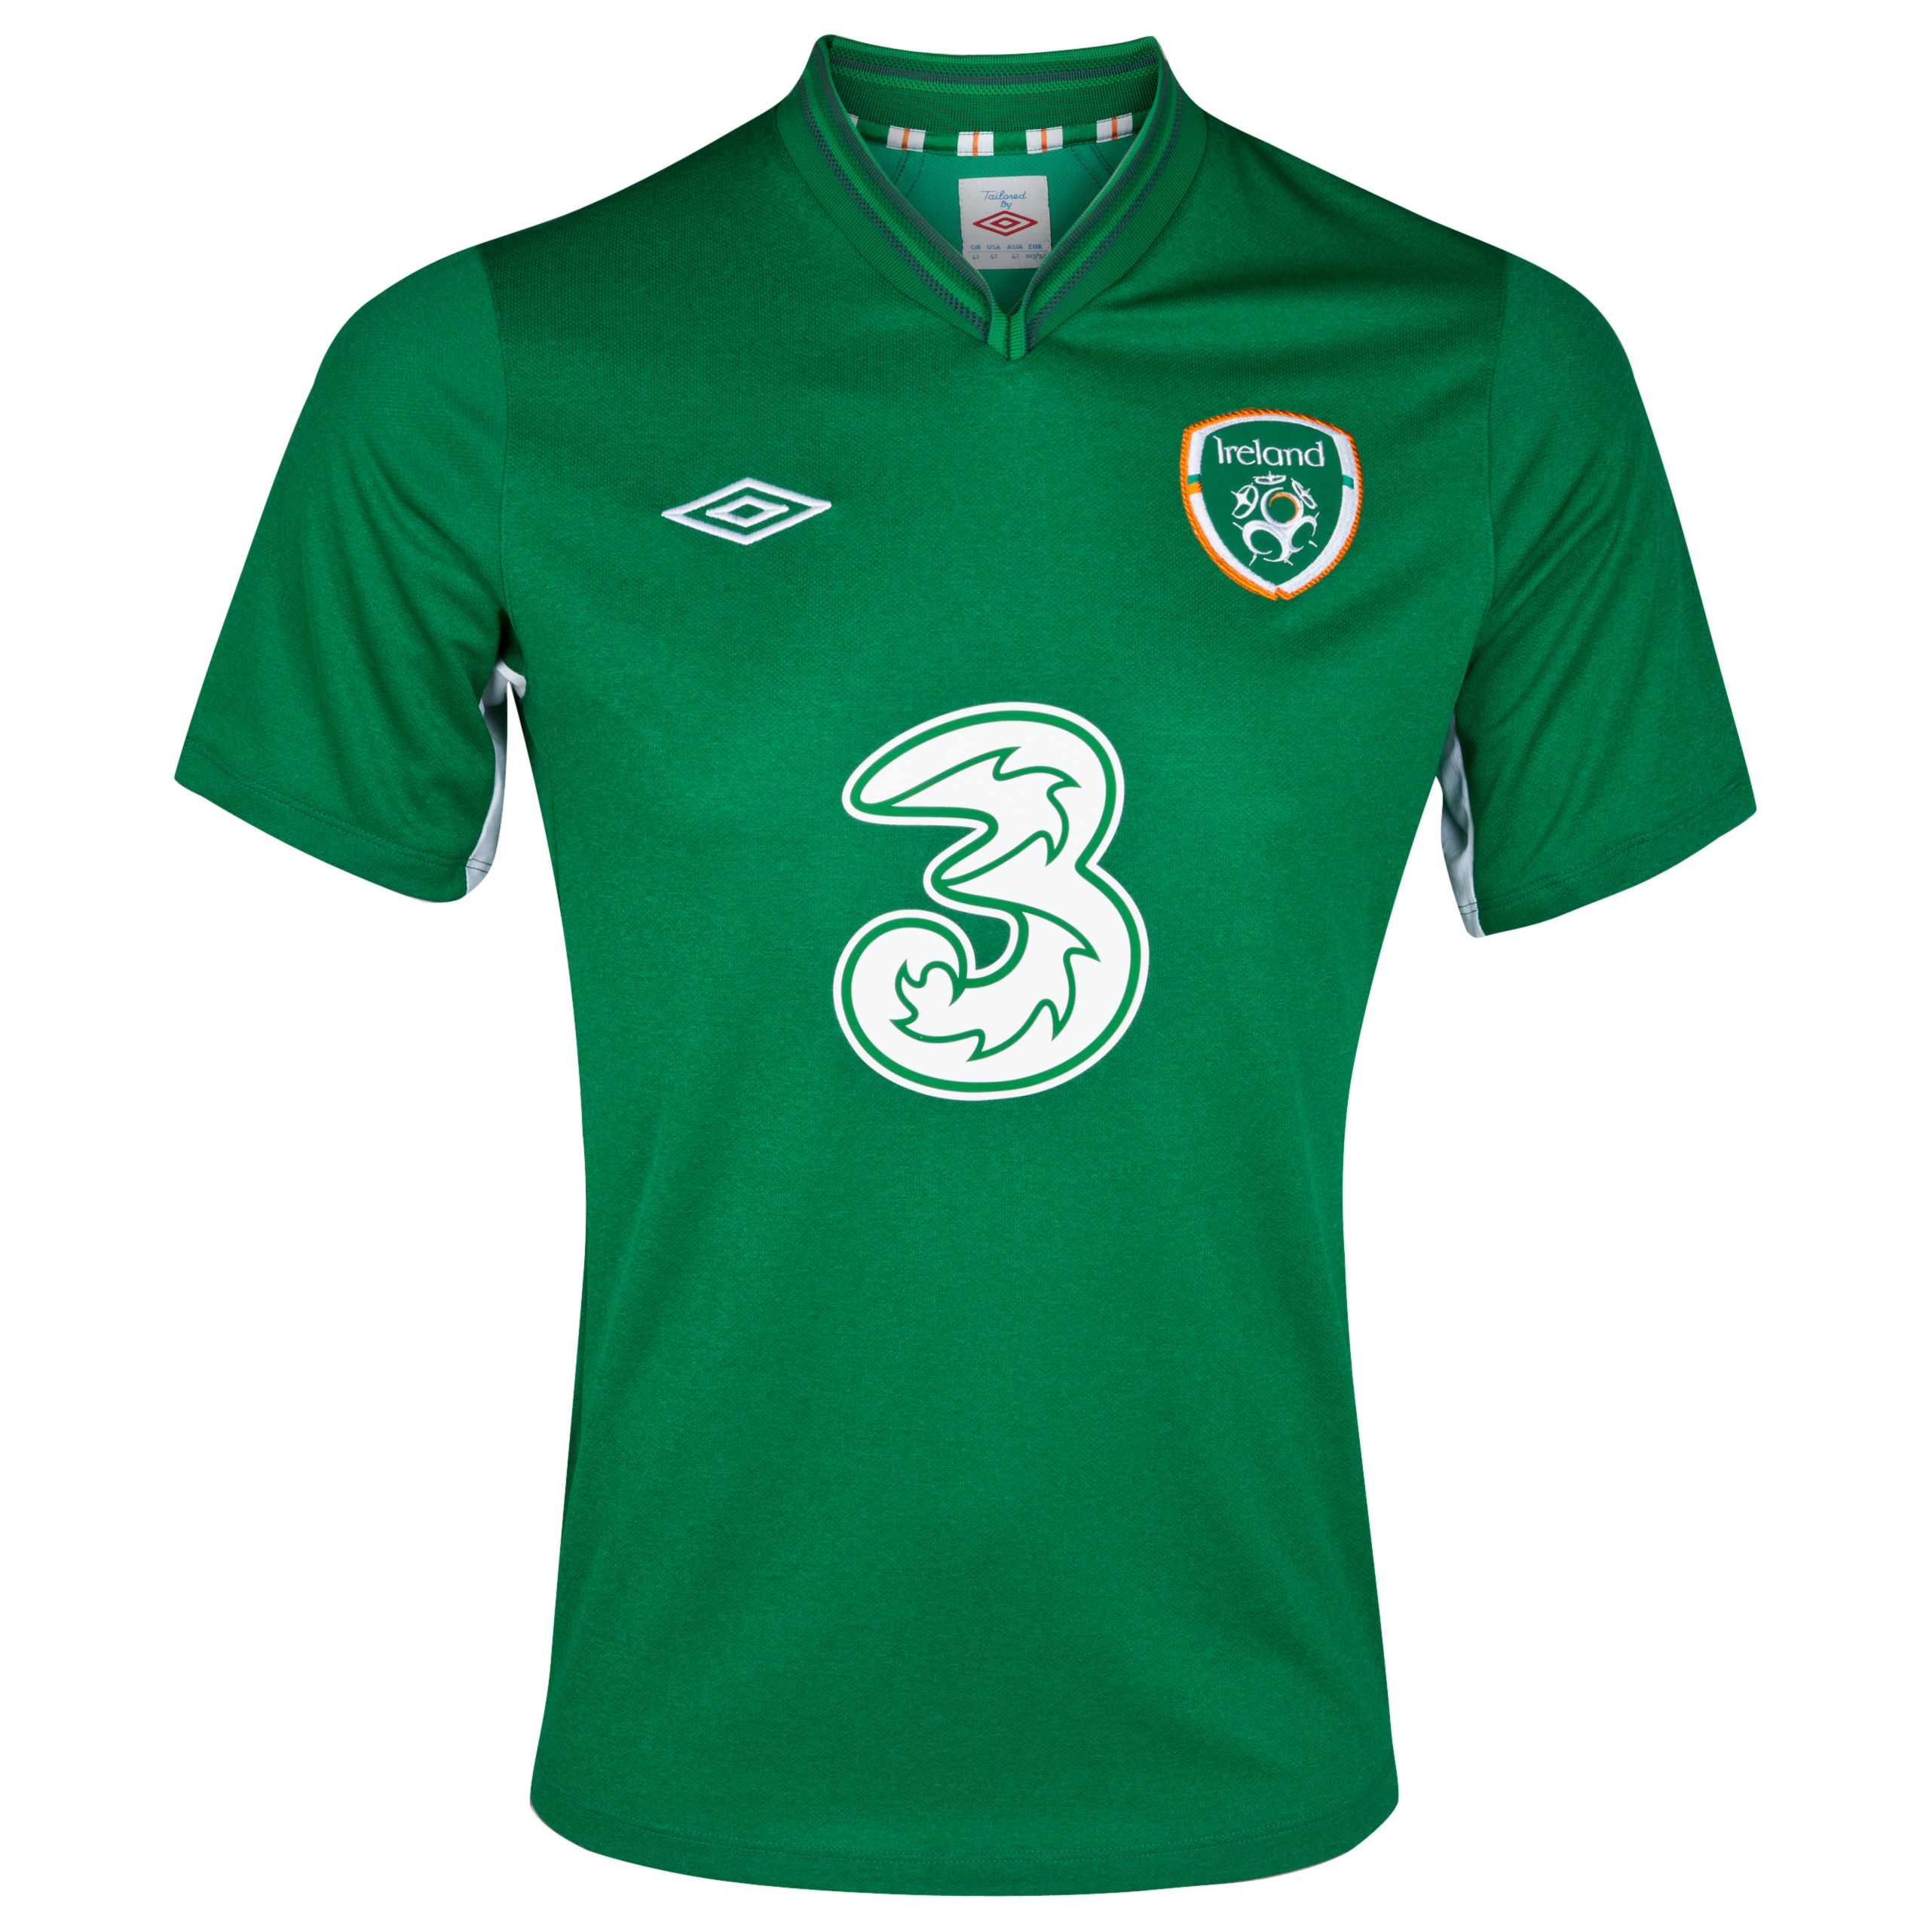 Republic Of Ireland Home Shirt 2012/13 Boys